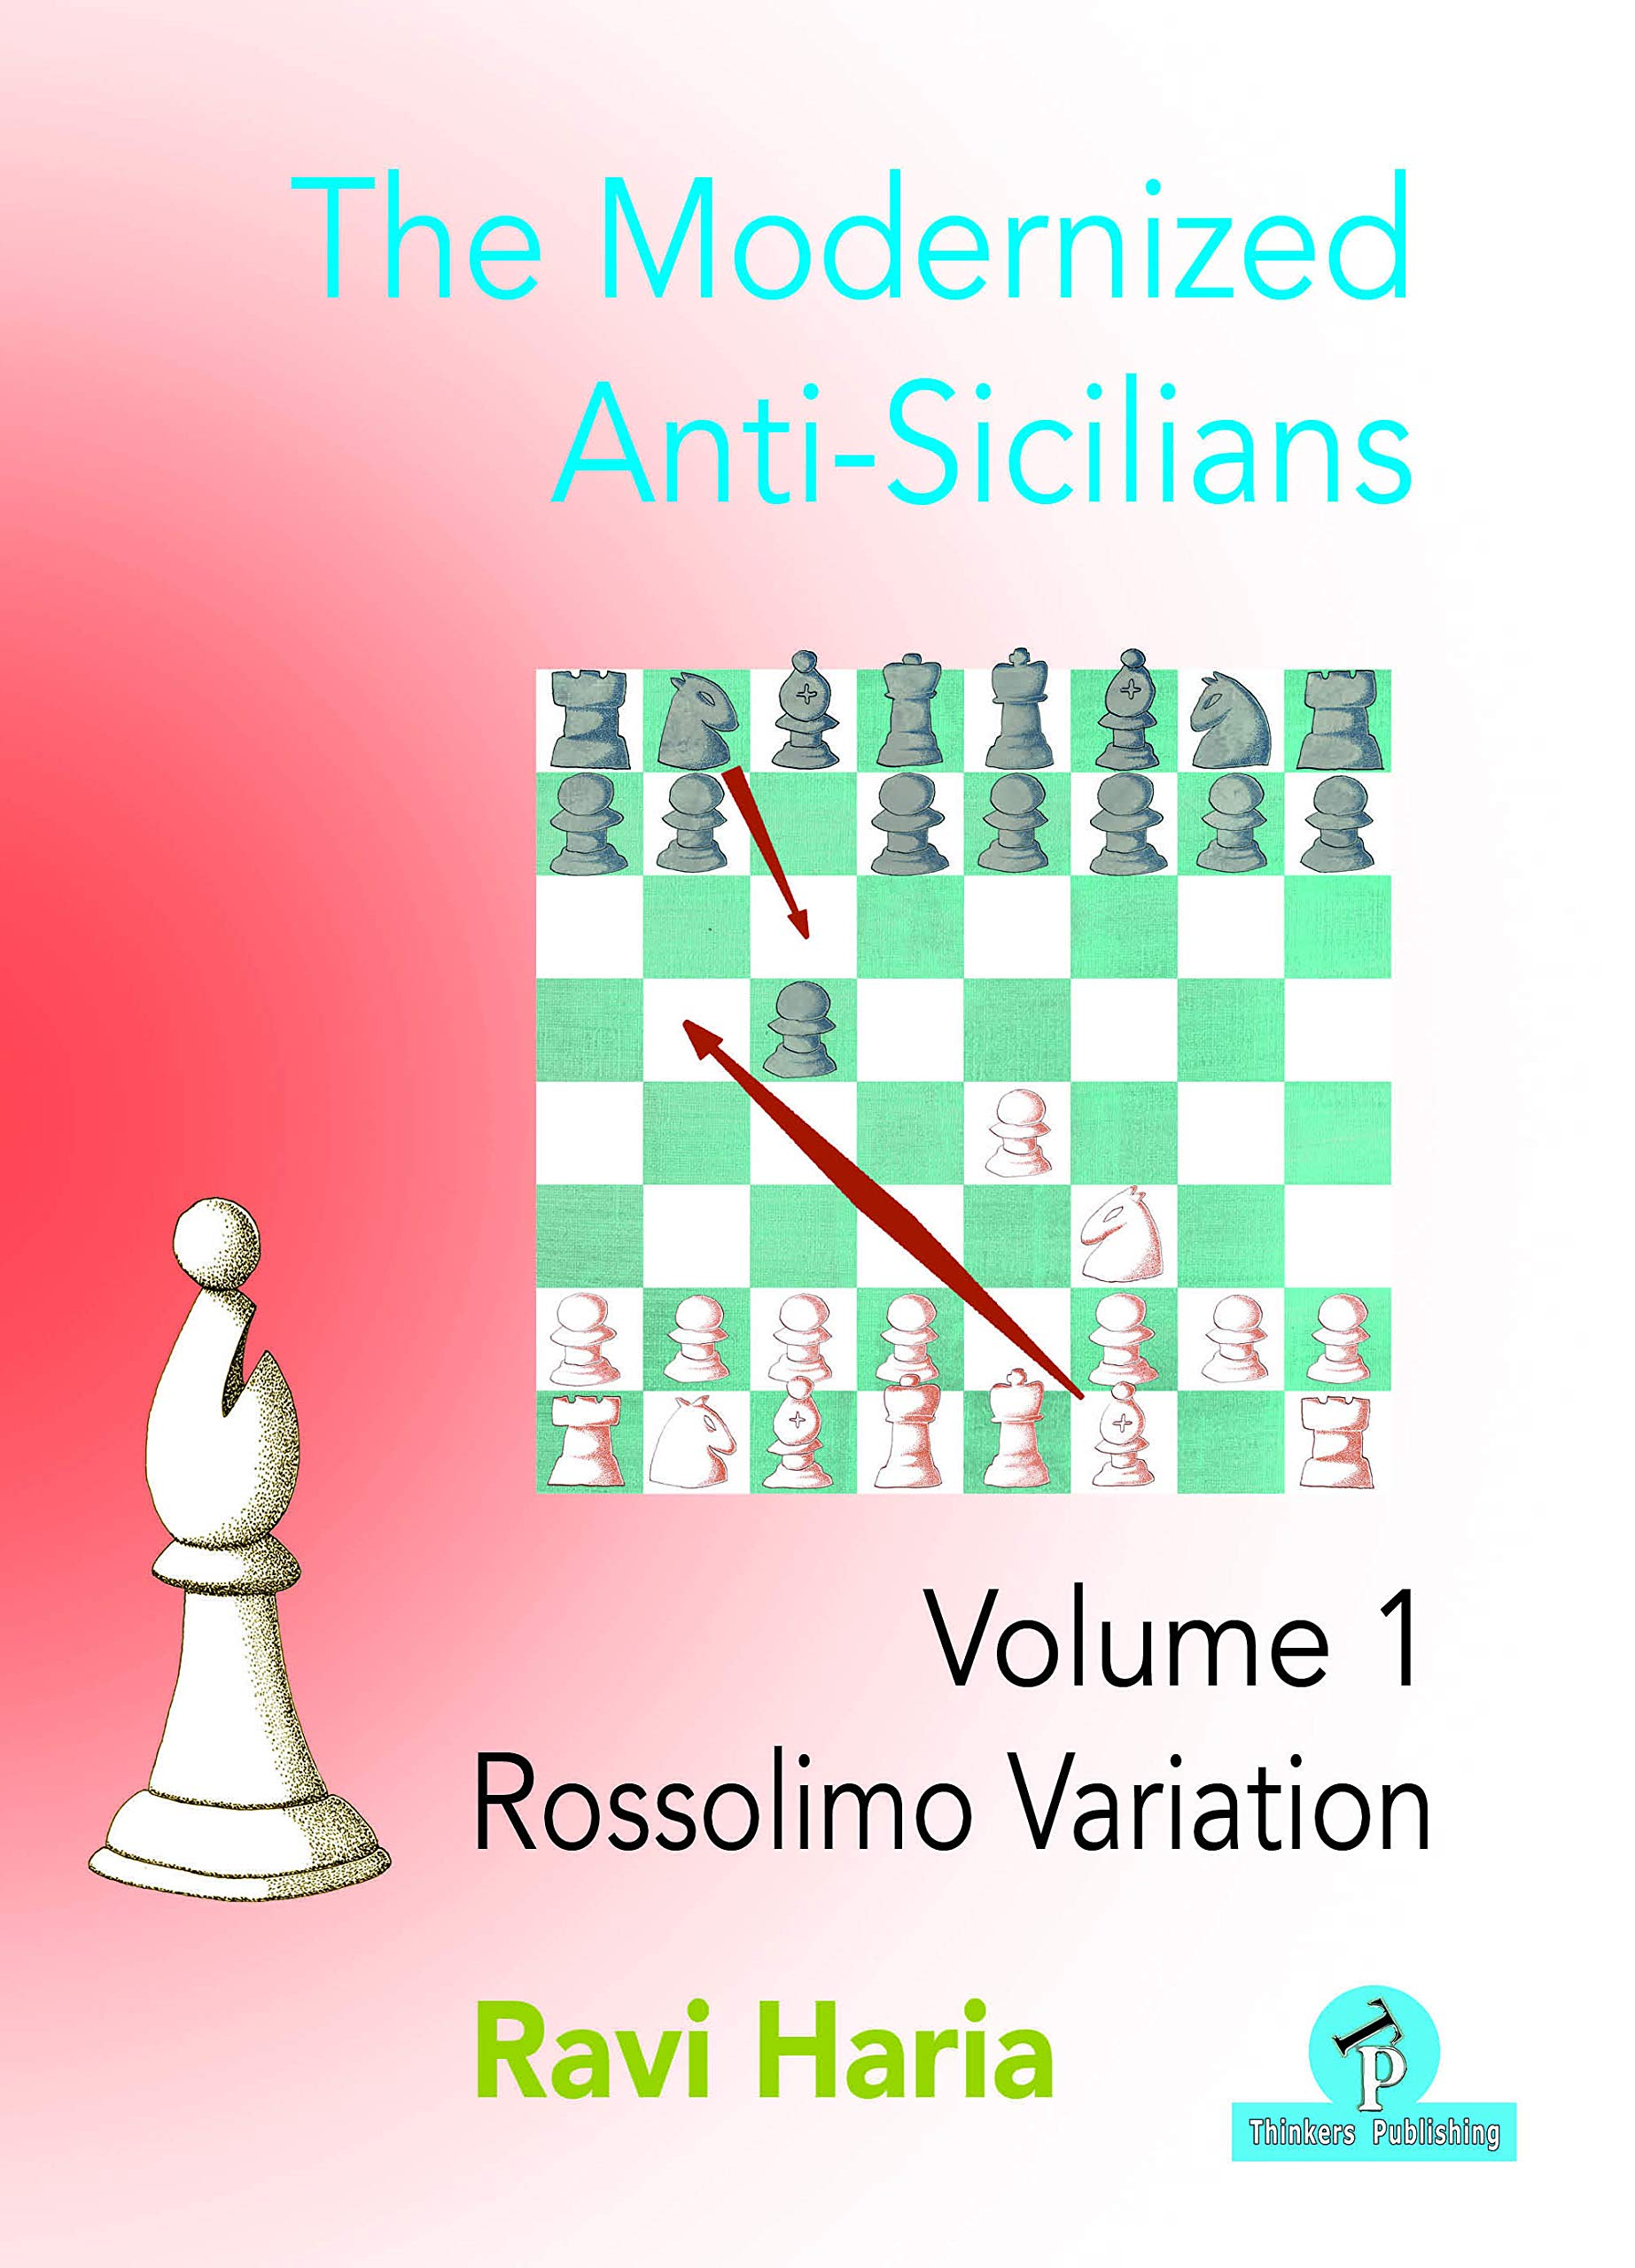 The Modernized Anti-Sicilians - Volume 1: Rossolimo Variation, Ravi Haria, Thinker's Publishing, 2021